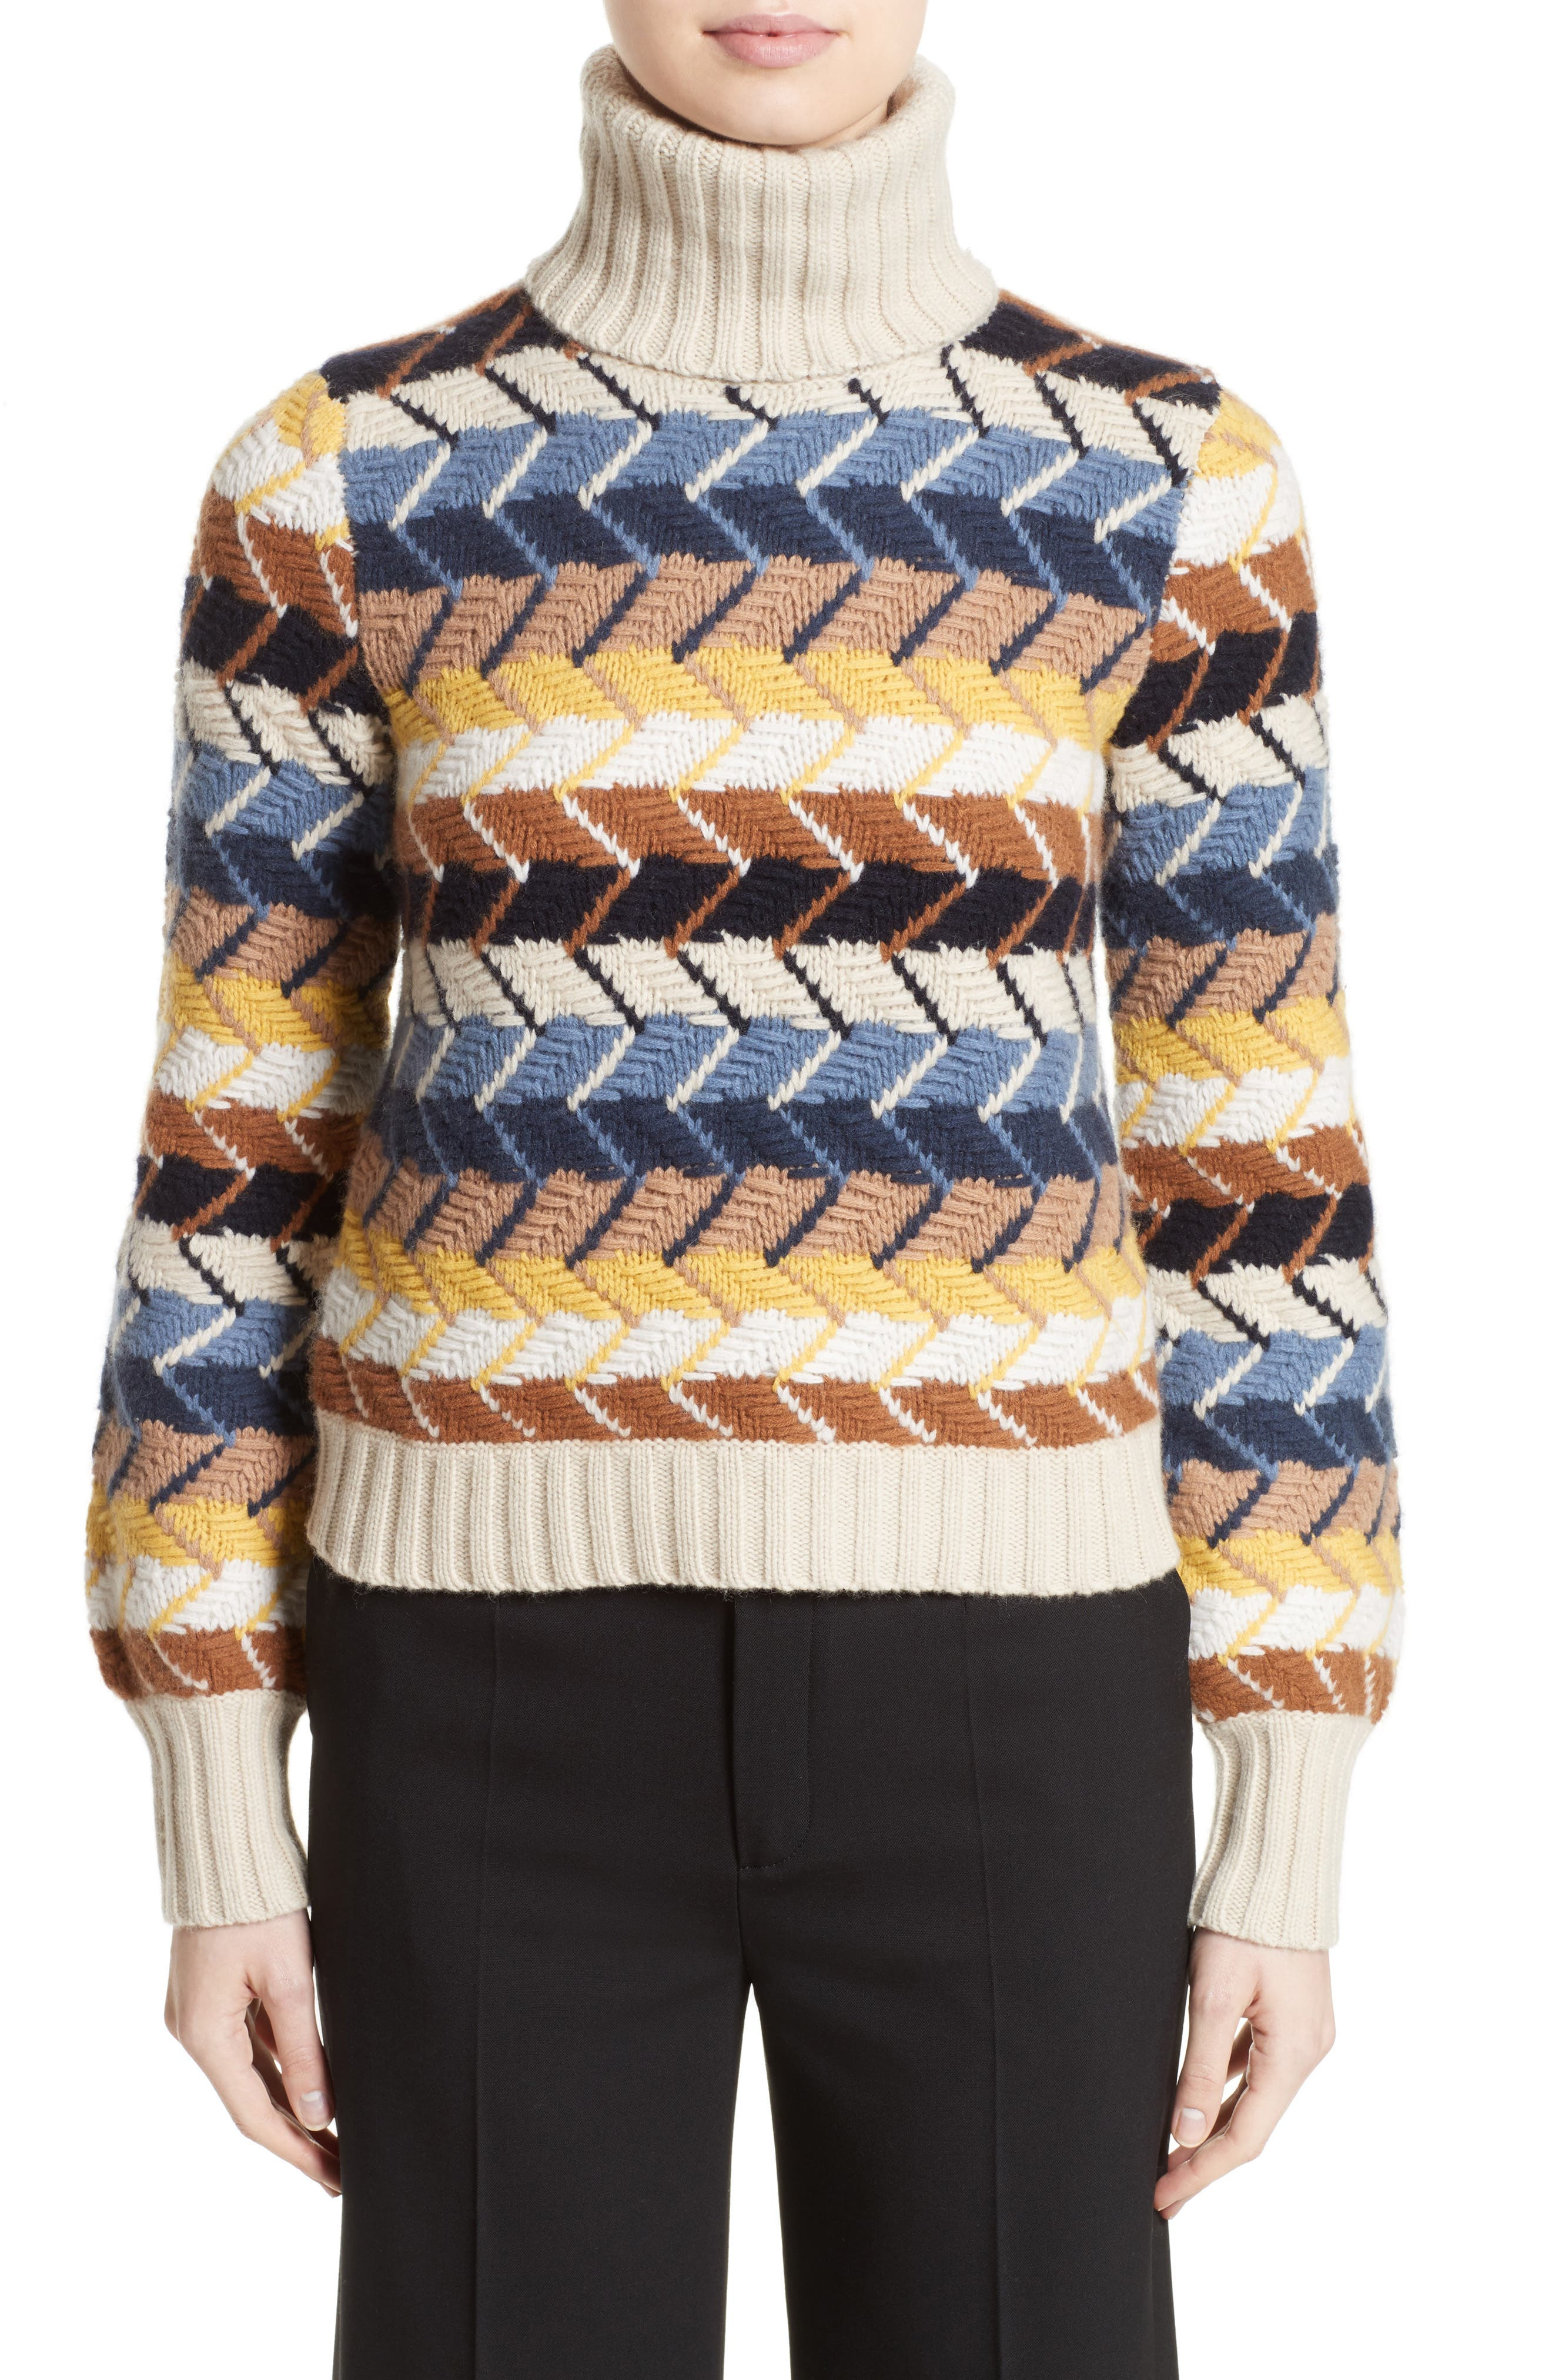 Alternate Image 1 Selected - Chloé Herringbone Wool & Cashmere Turtleneck Sweater